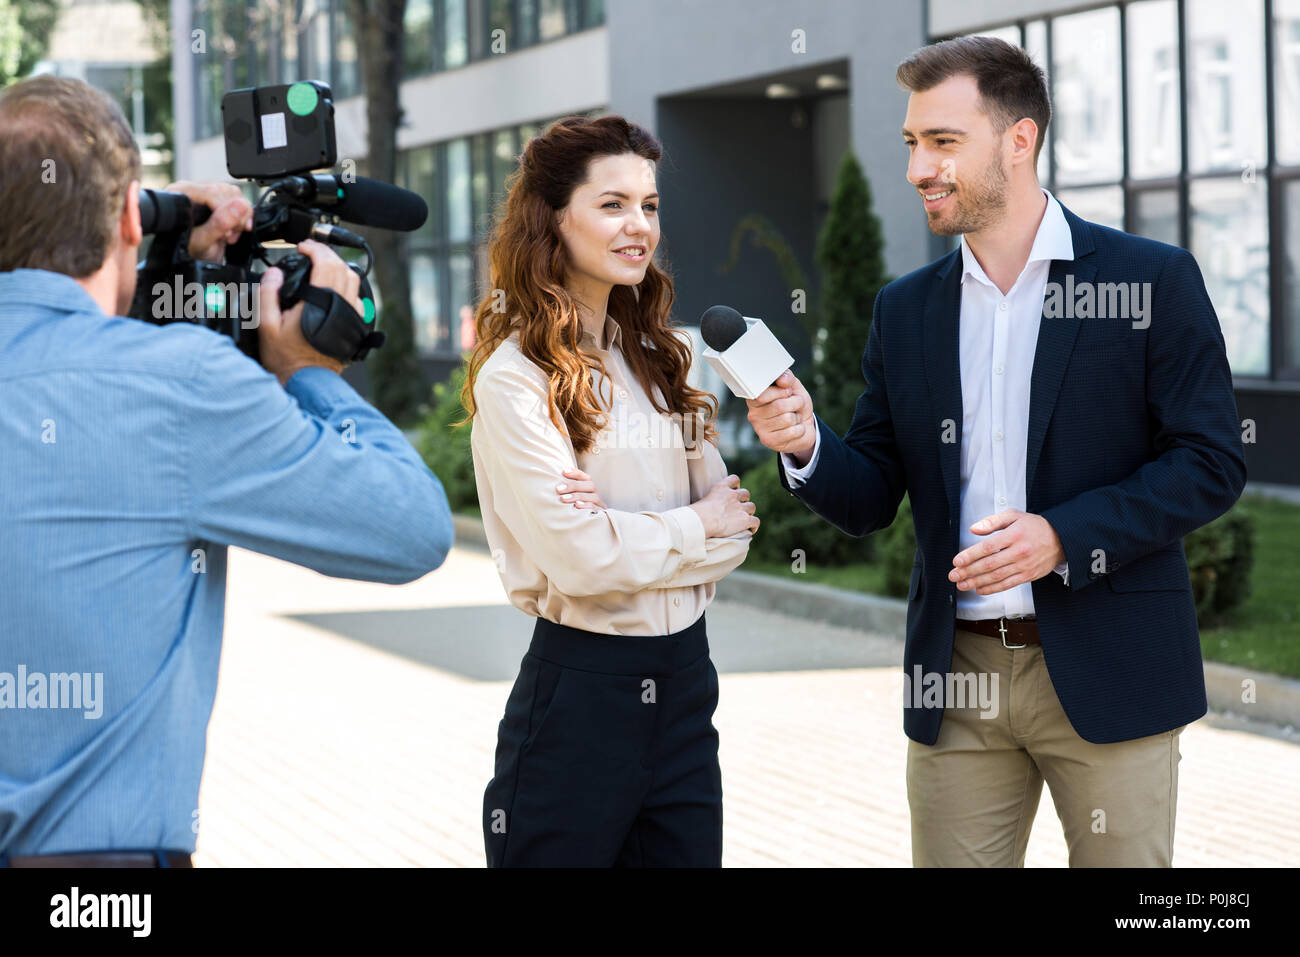 professional cameraman and male news reporter interviewing smiling businesswoman - Stock Image